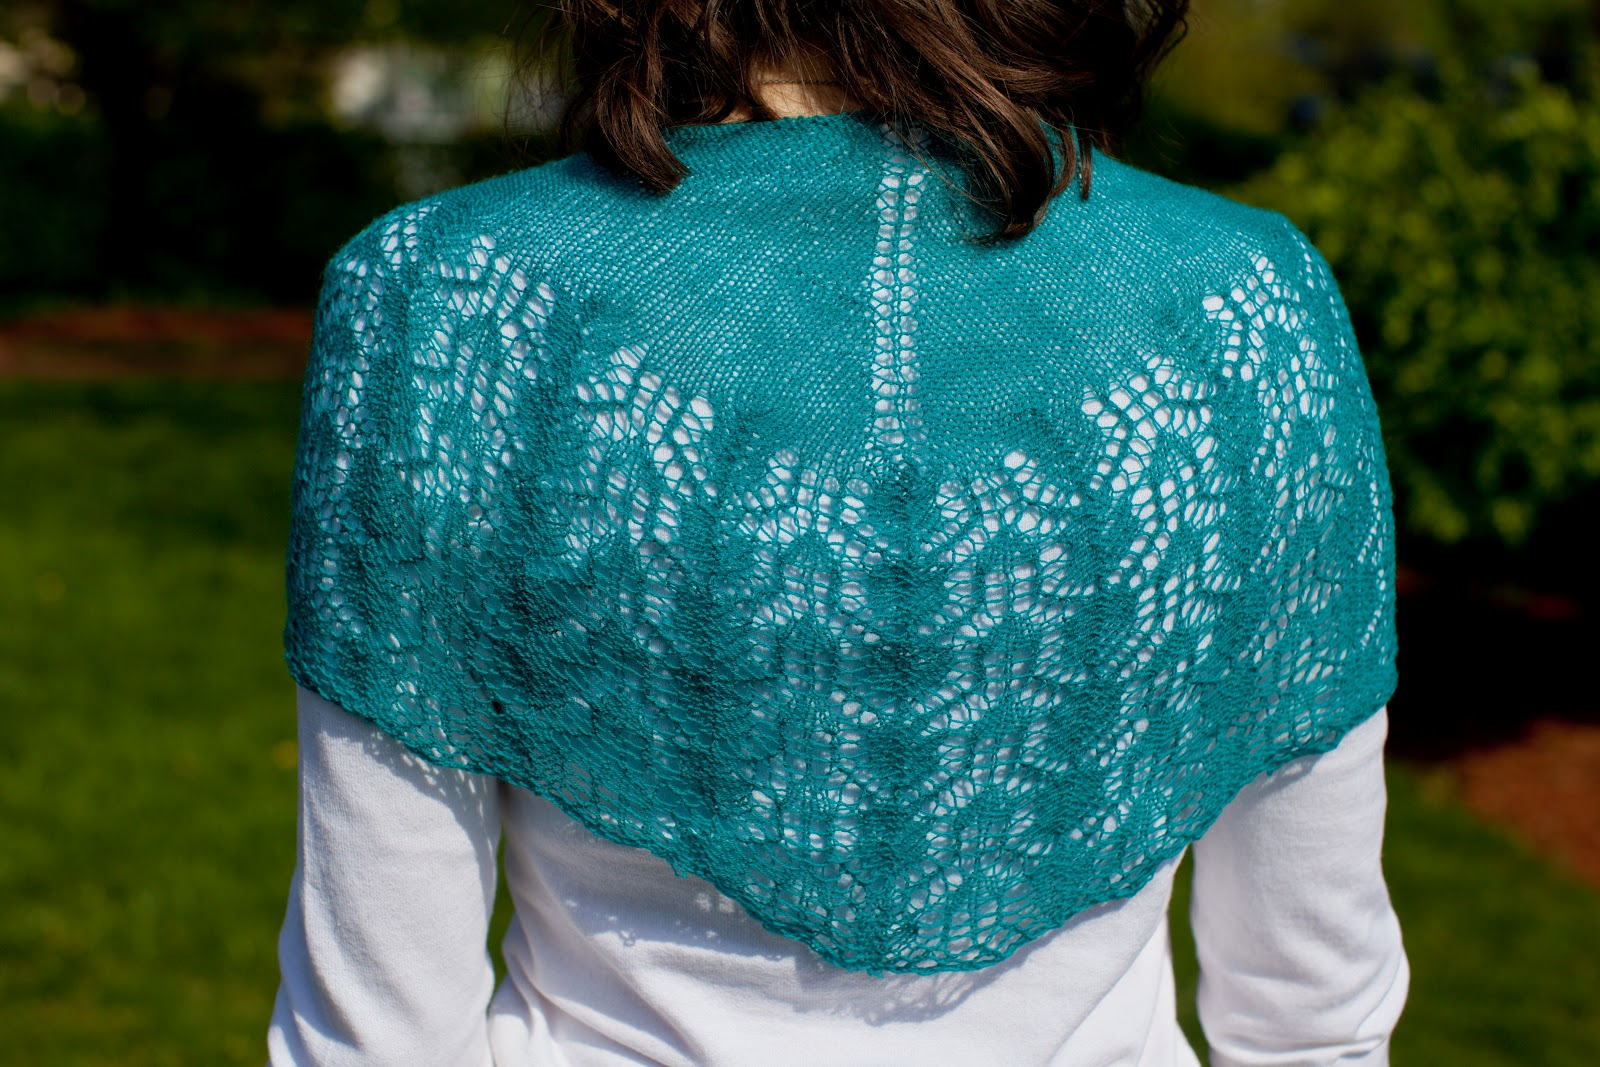 New pattern pine cone shawl mari knits the pattern is simple and easy to customize so what are you waiting for you know you need more lightweight shawlettes for spring and summer bankloansurffo Images